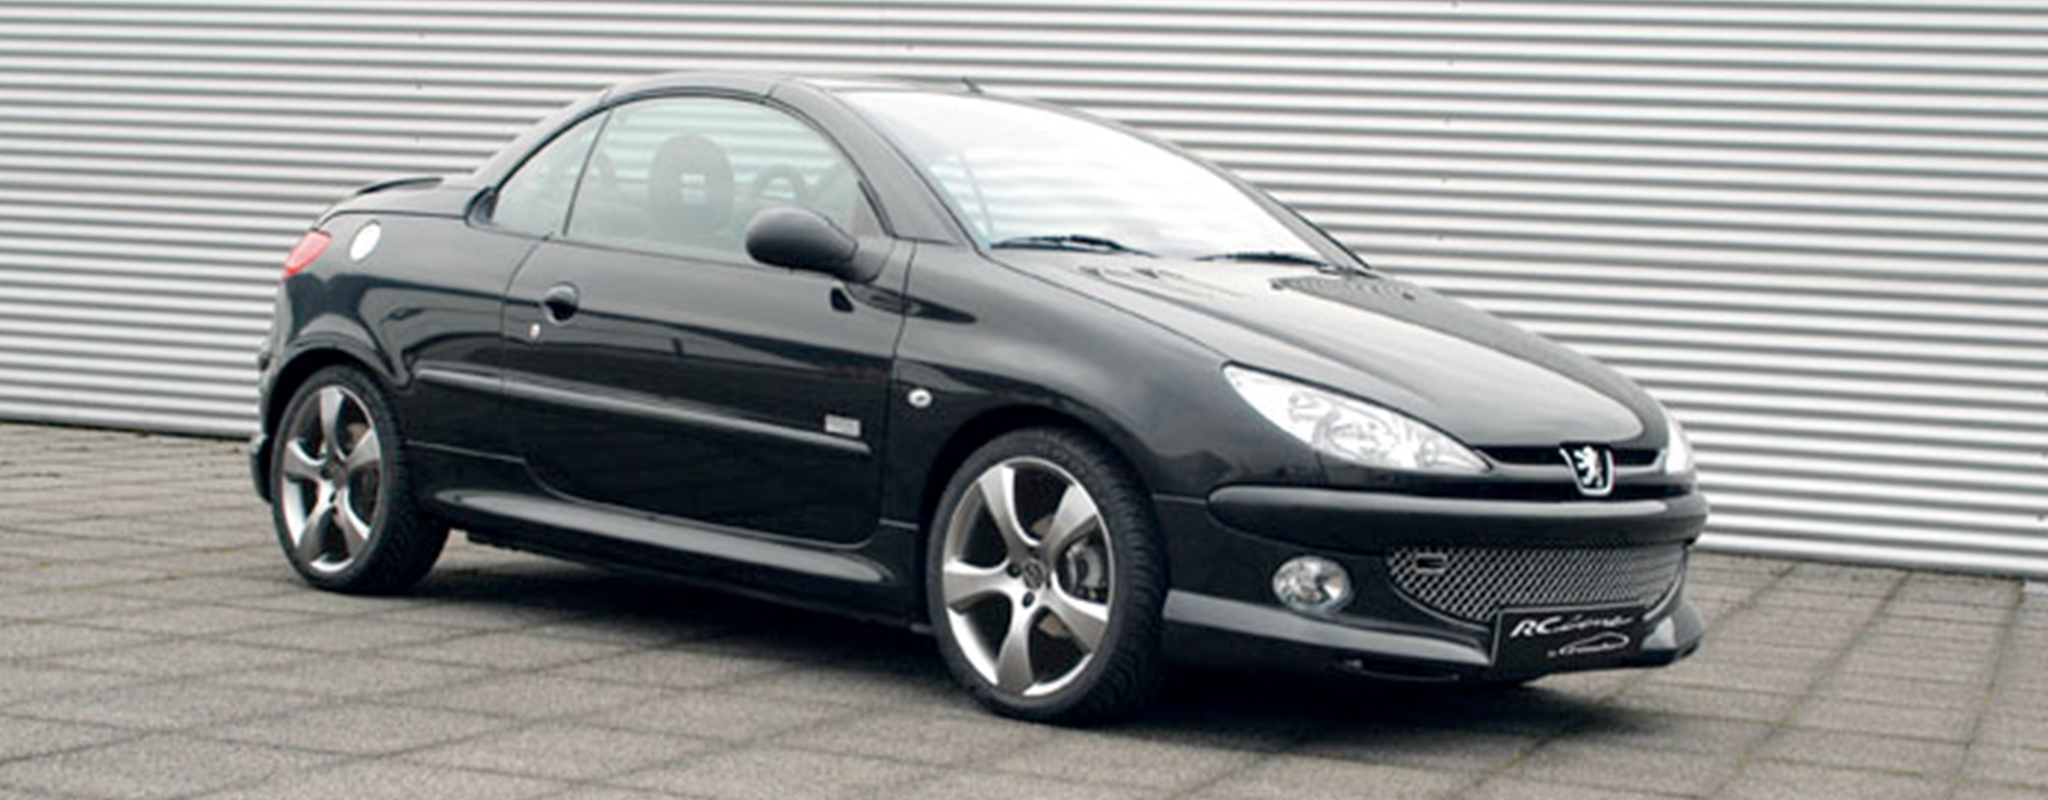 100 peugeot 206 cc modified peugeot 206cc 2005 modified cars fun peugeot 206 cc 2000 car. Black Bedroom Furniture Sets. Home Design Ideas